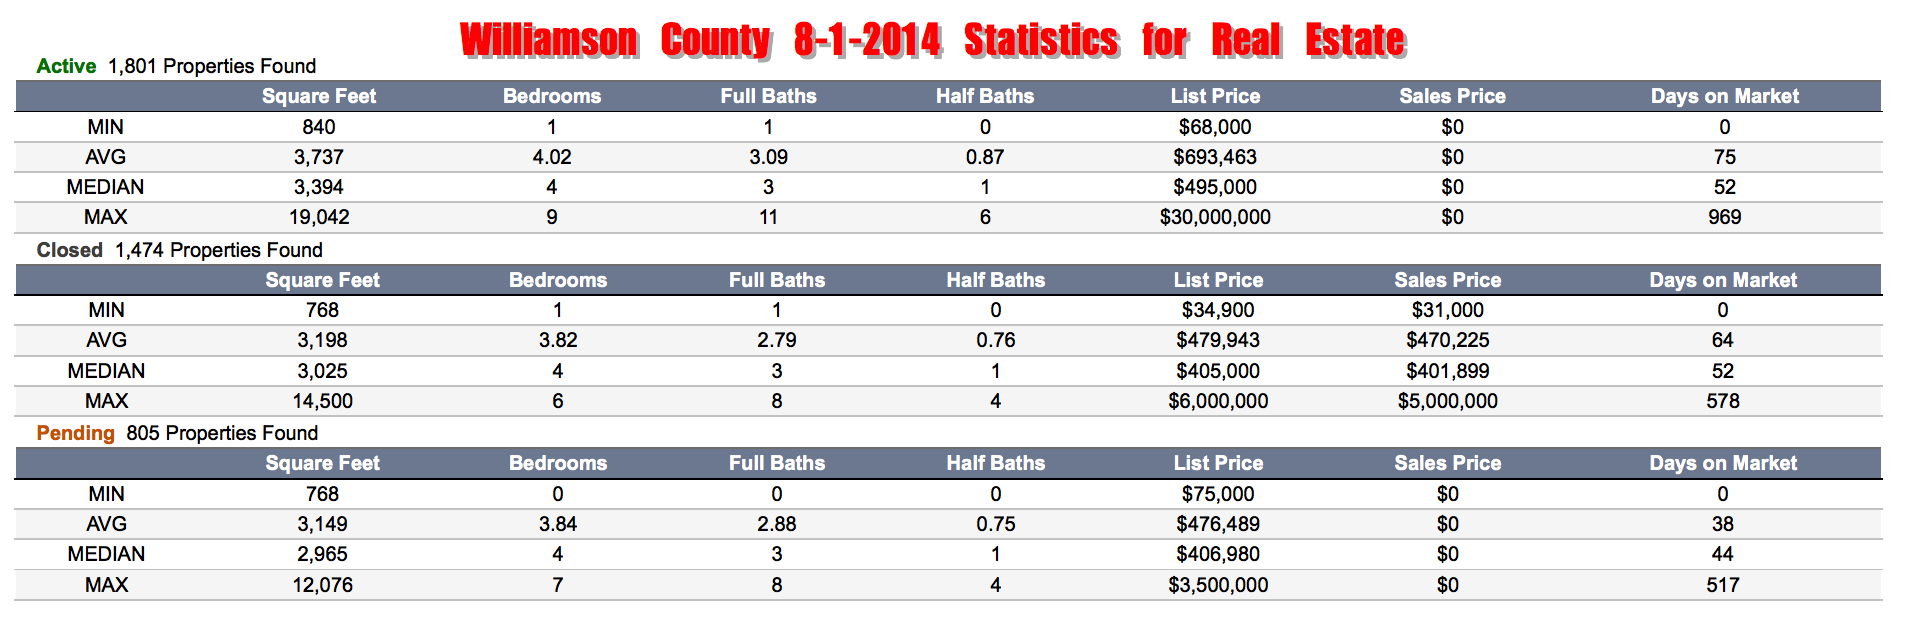 Williamson County Stats in Real Estate Aug 2014